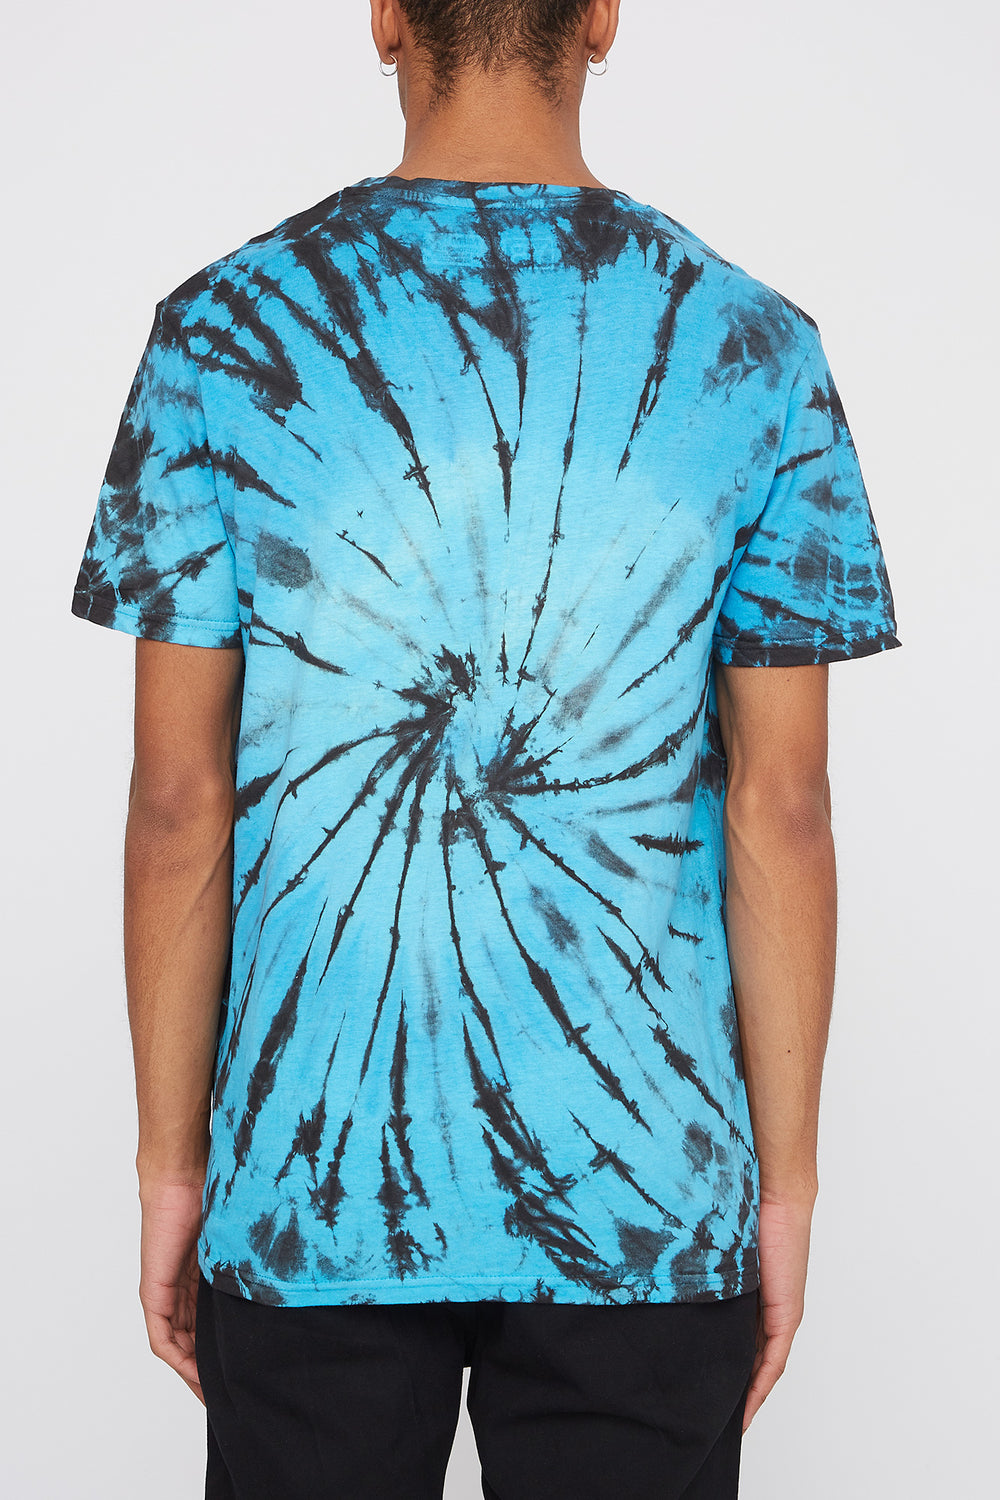 Young & Reckless Mens Tie-Dye T-Shirt Turquoise